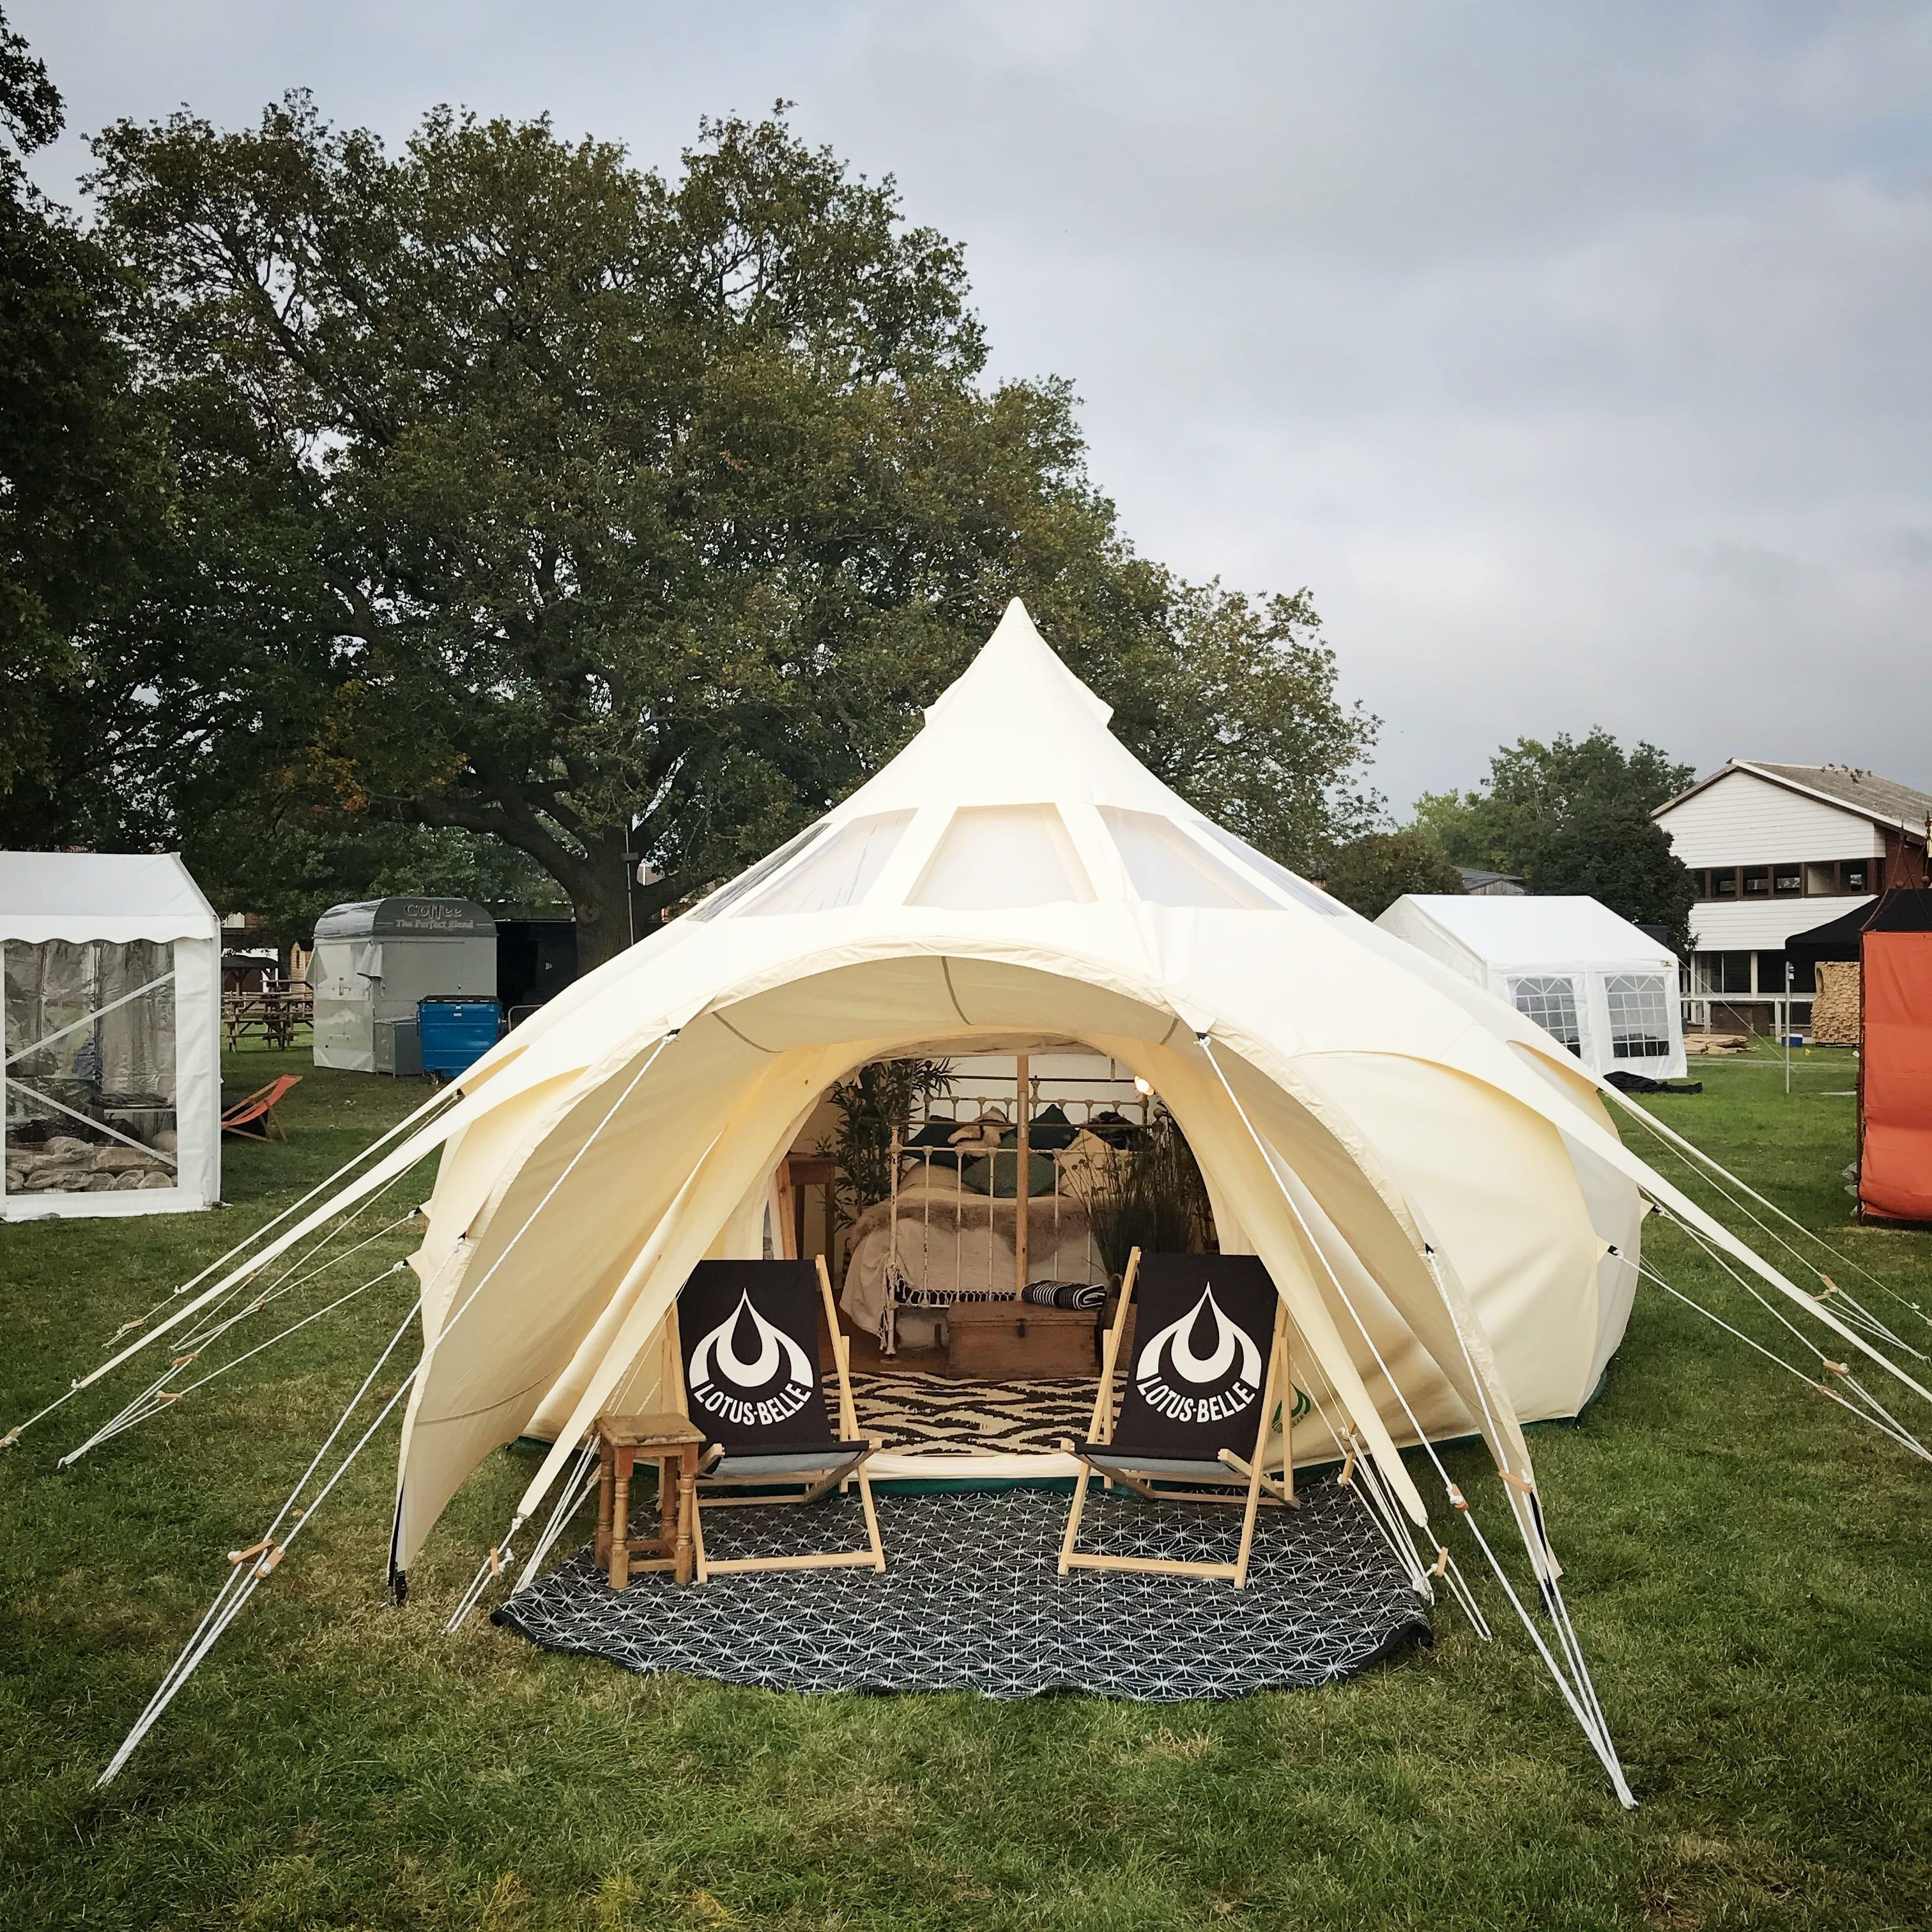 7 blog posts from Glamping Show 2020 speakers you need to read